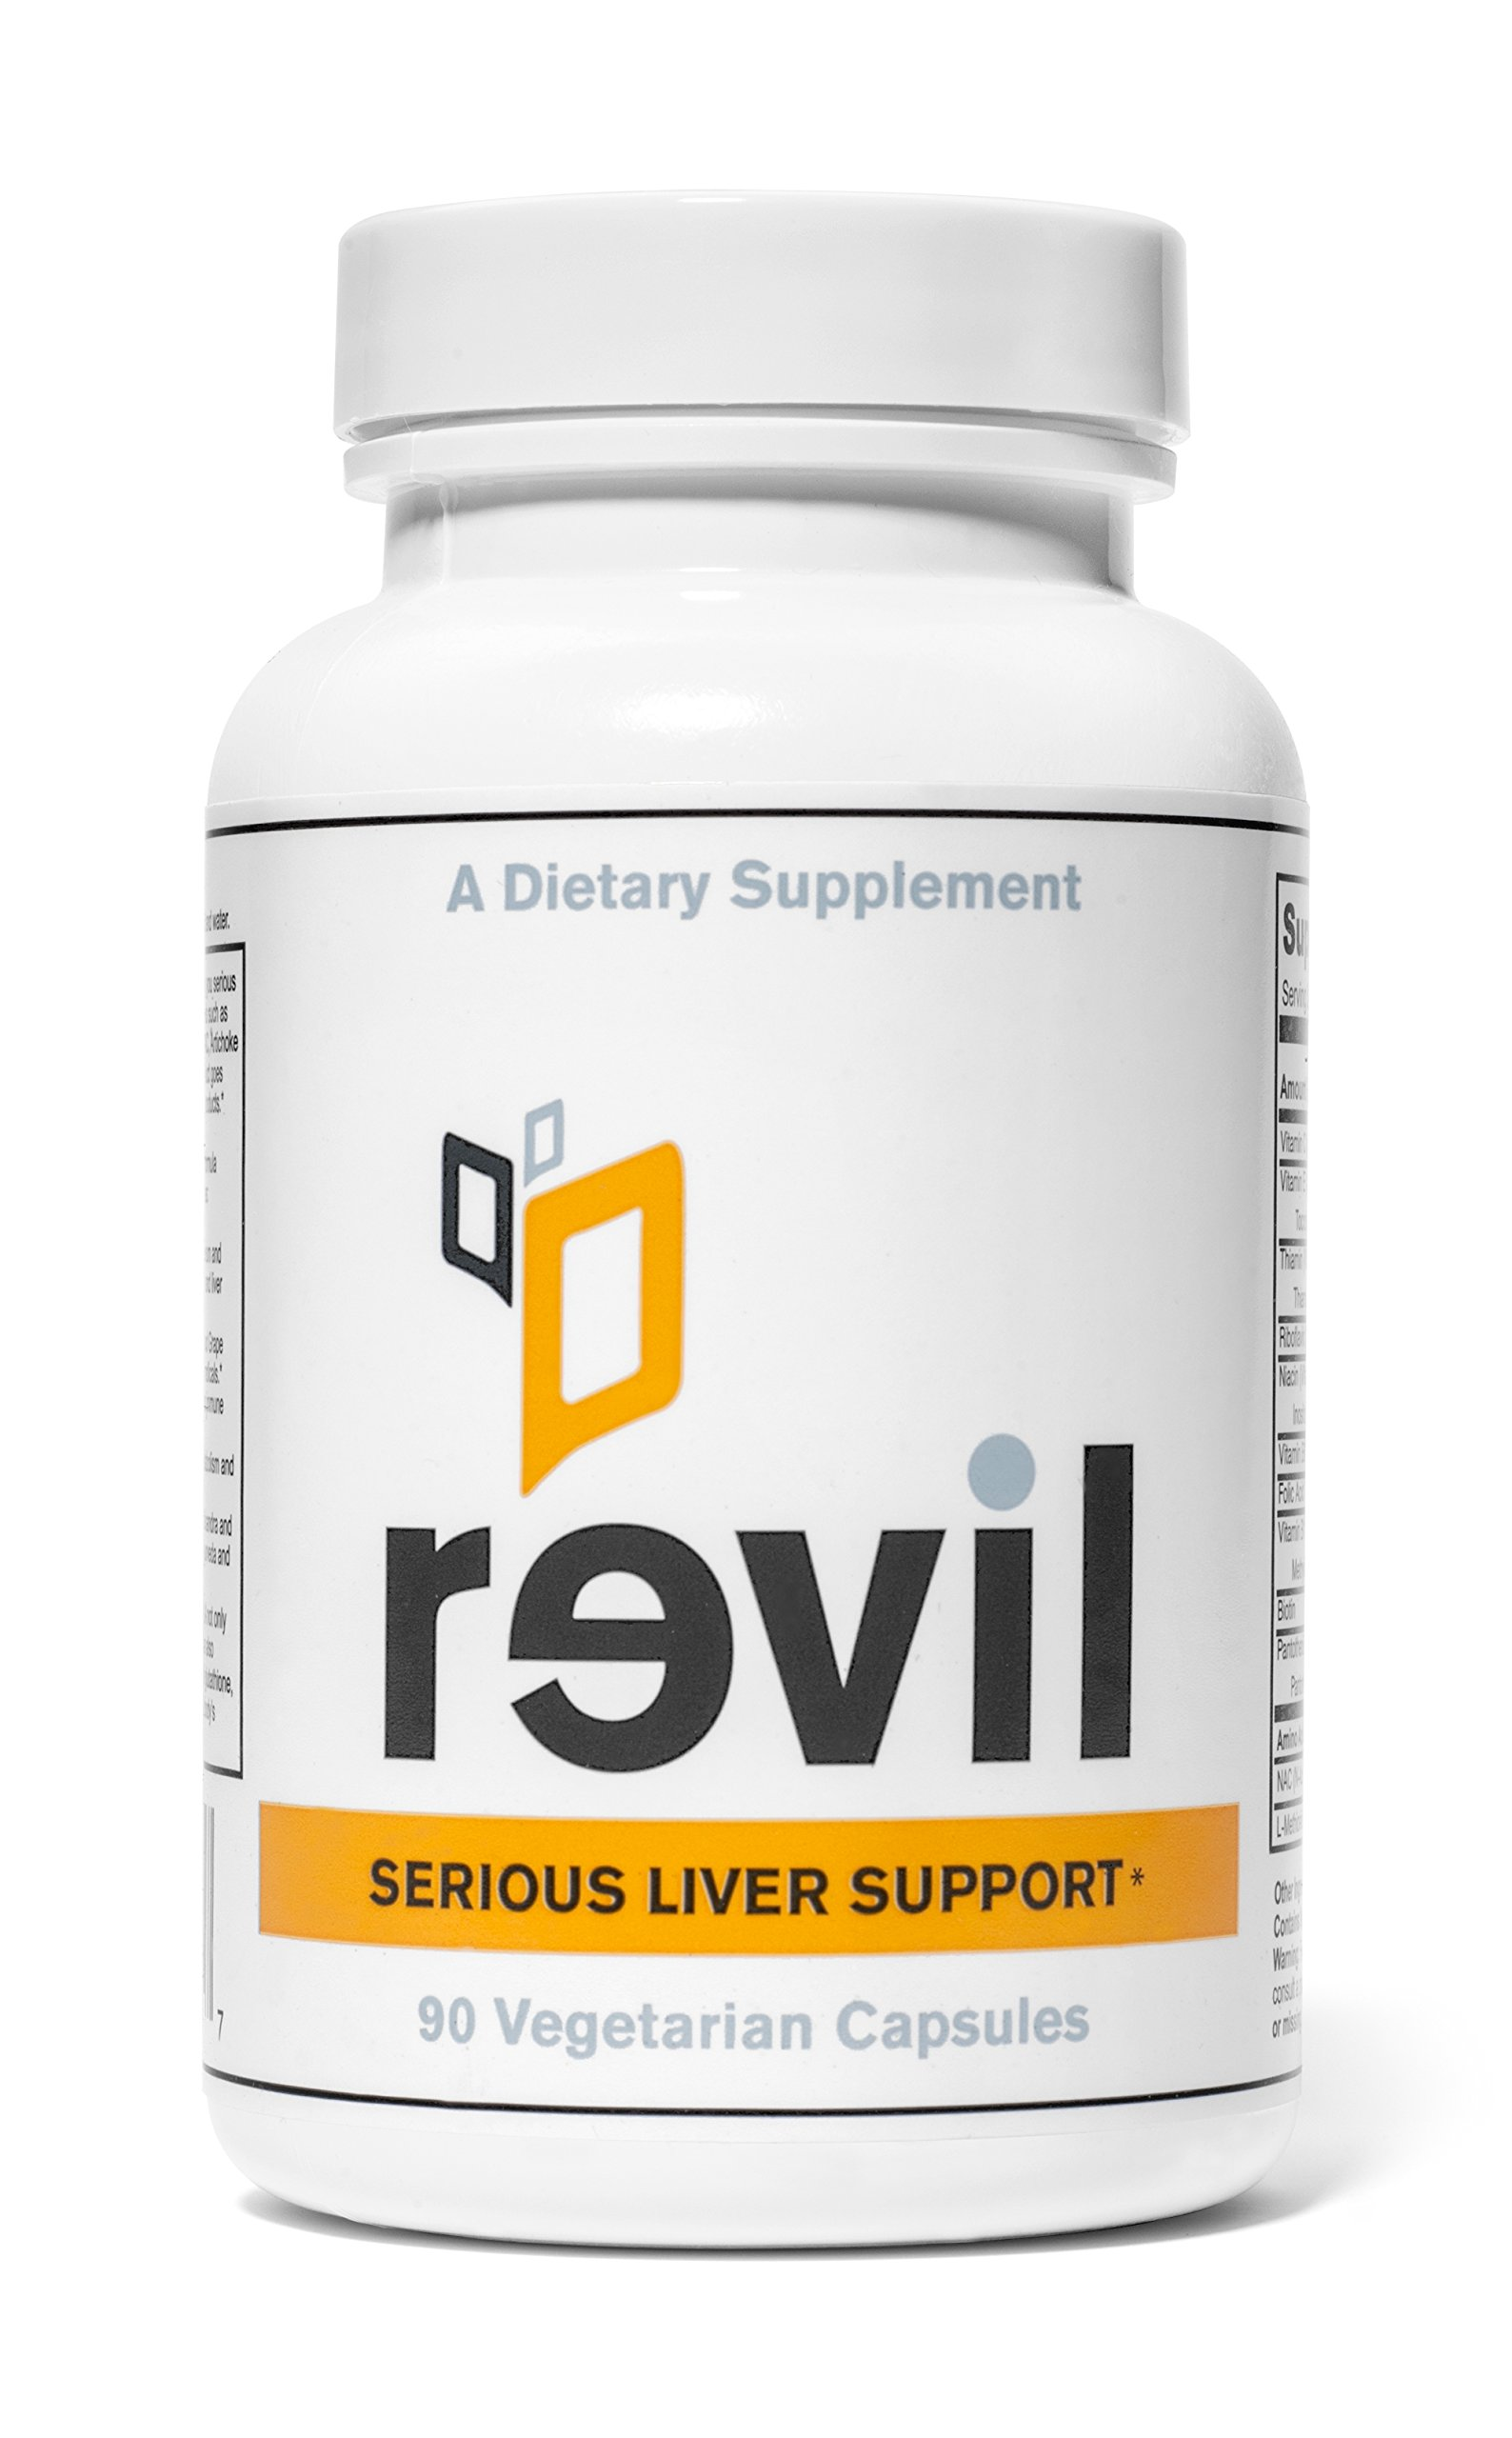 Serious Liver Support & Liver Detox (With Organic Milk Thistle, Organic Reishi Mushroom, and NAC)